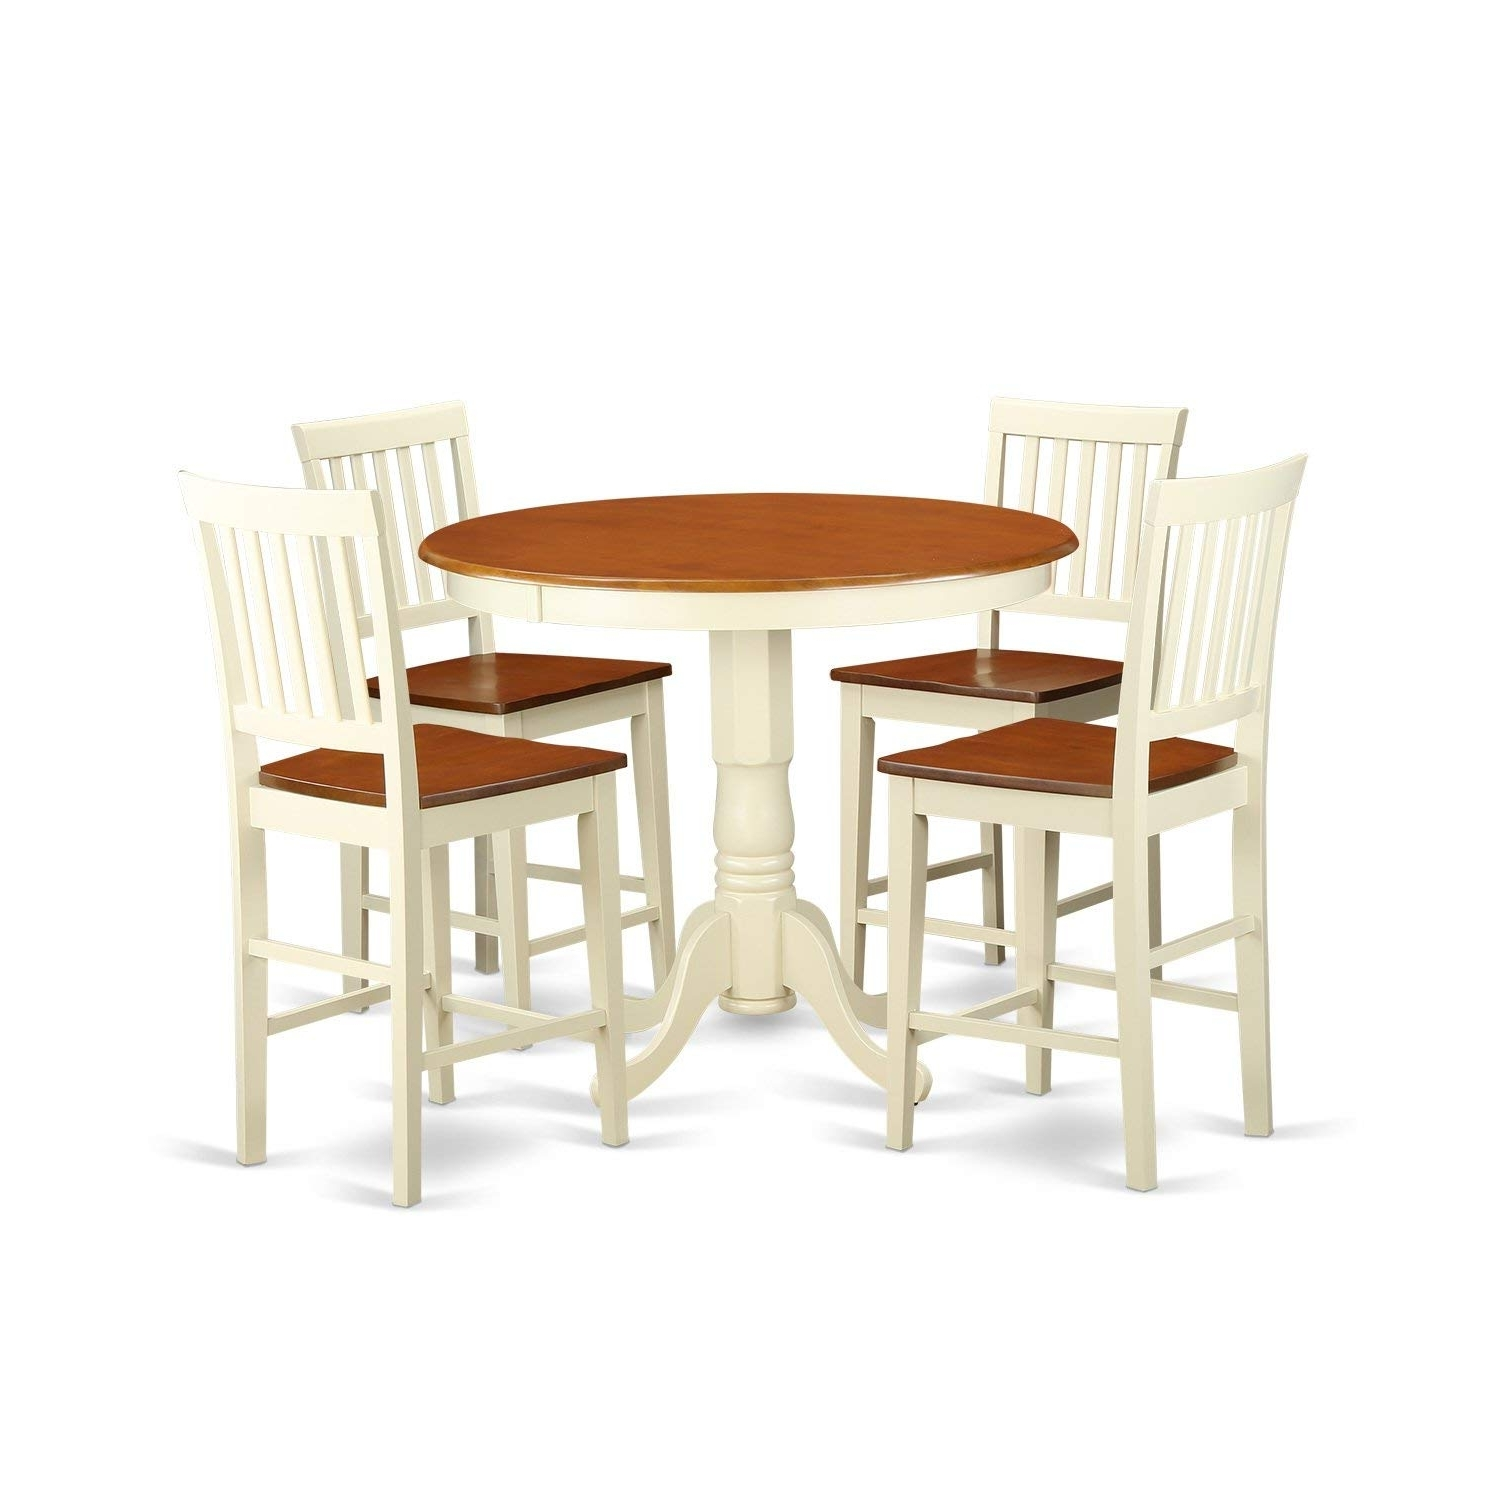 Widely Used Amazon – East West Furniture Javn5 Whi W 5 Piece Counter Height For Jaxon 5 Piece Extension Counter Sets With Wood Stools (View 9 of 25)